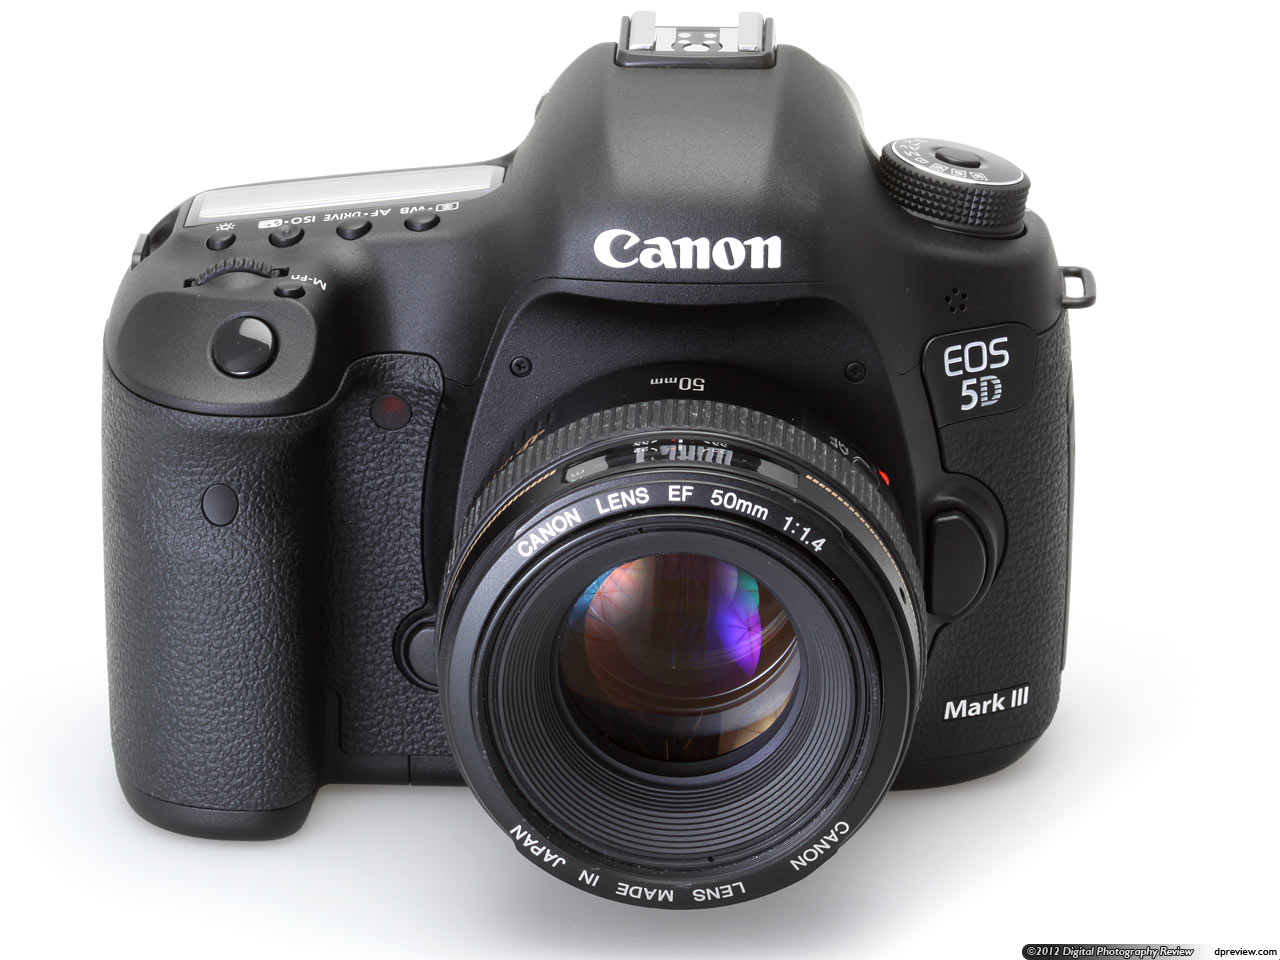 Review based on production Canon EOS 5D Mark III with firmware v1.1.2